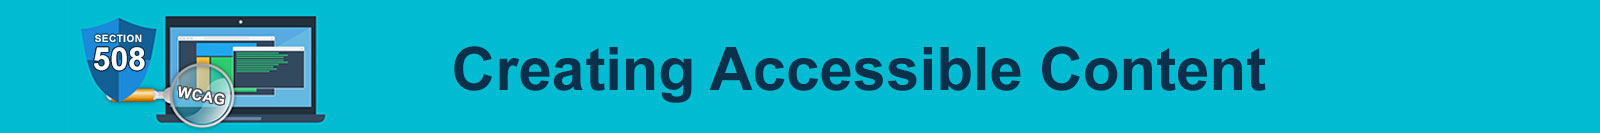 Creating Accessible Content